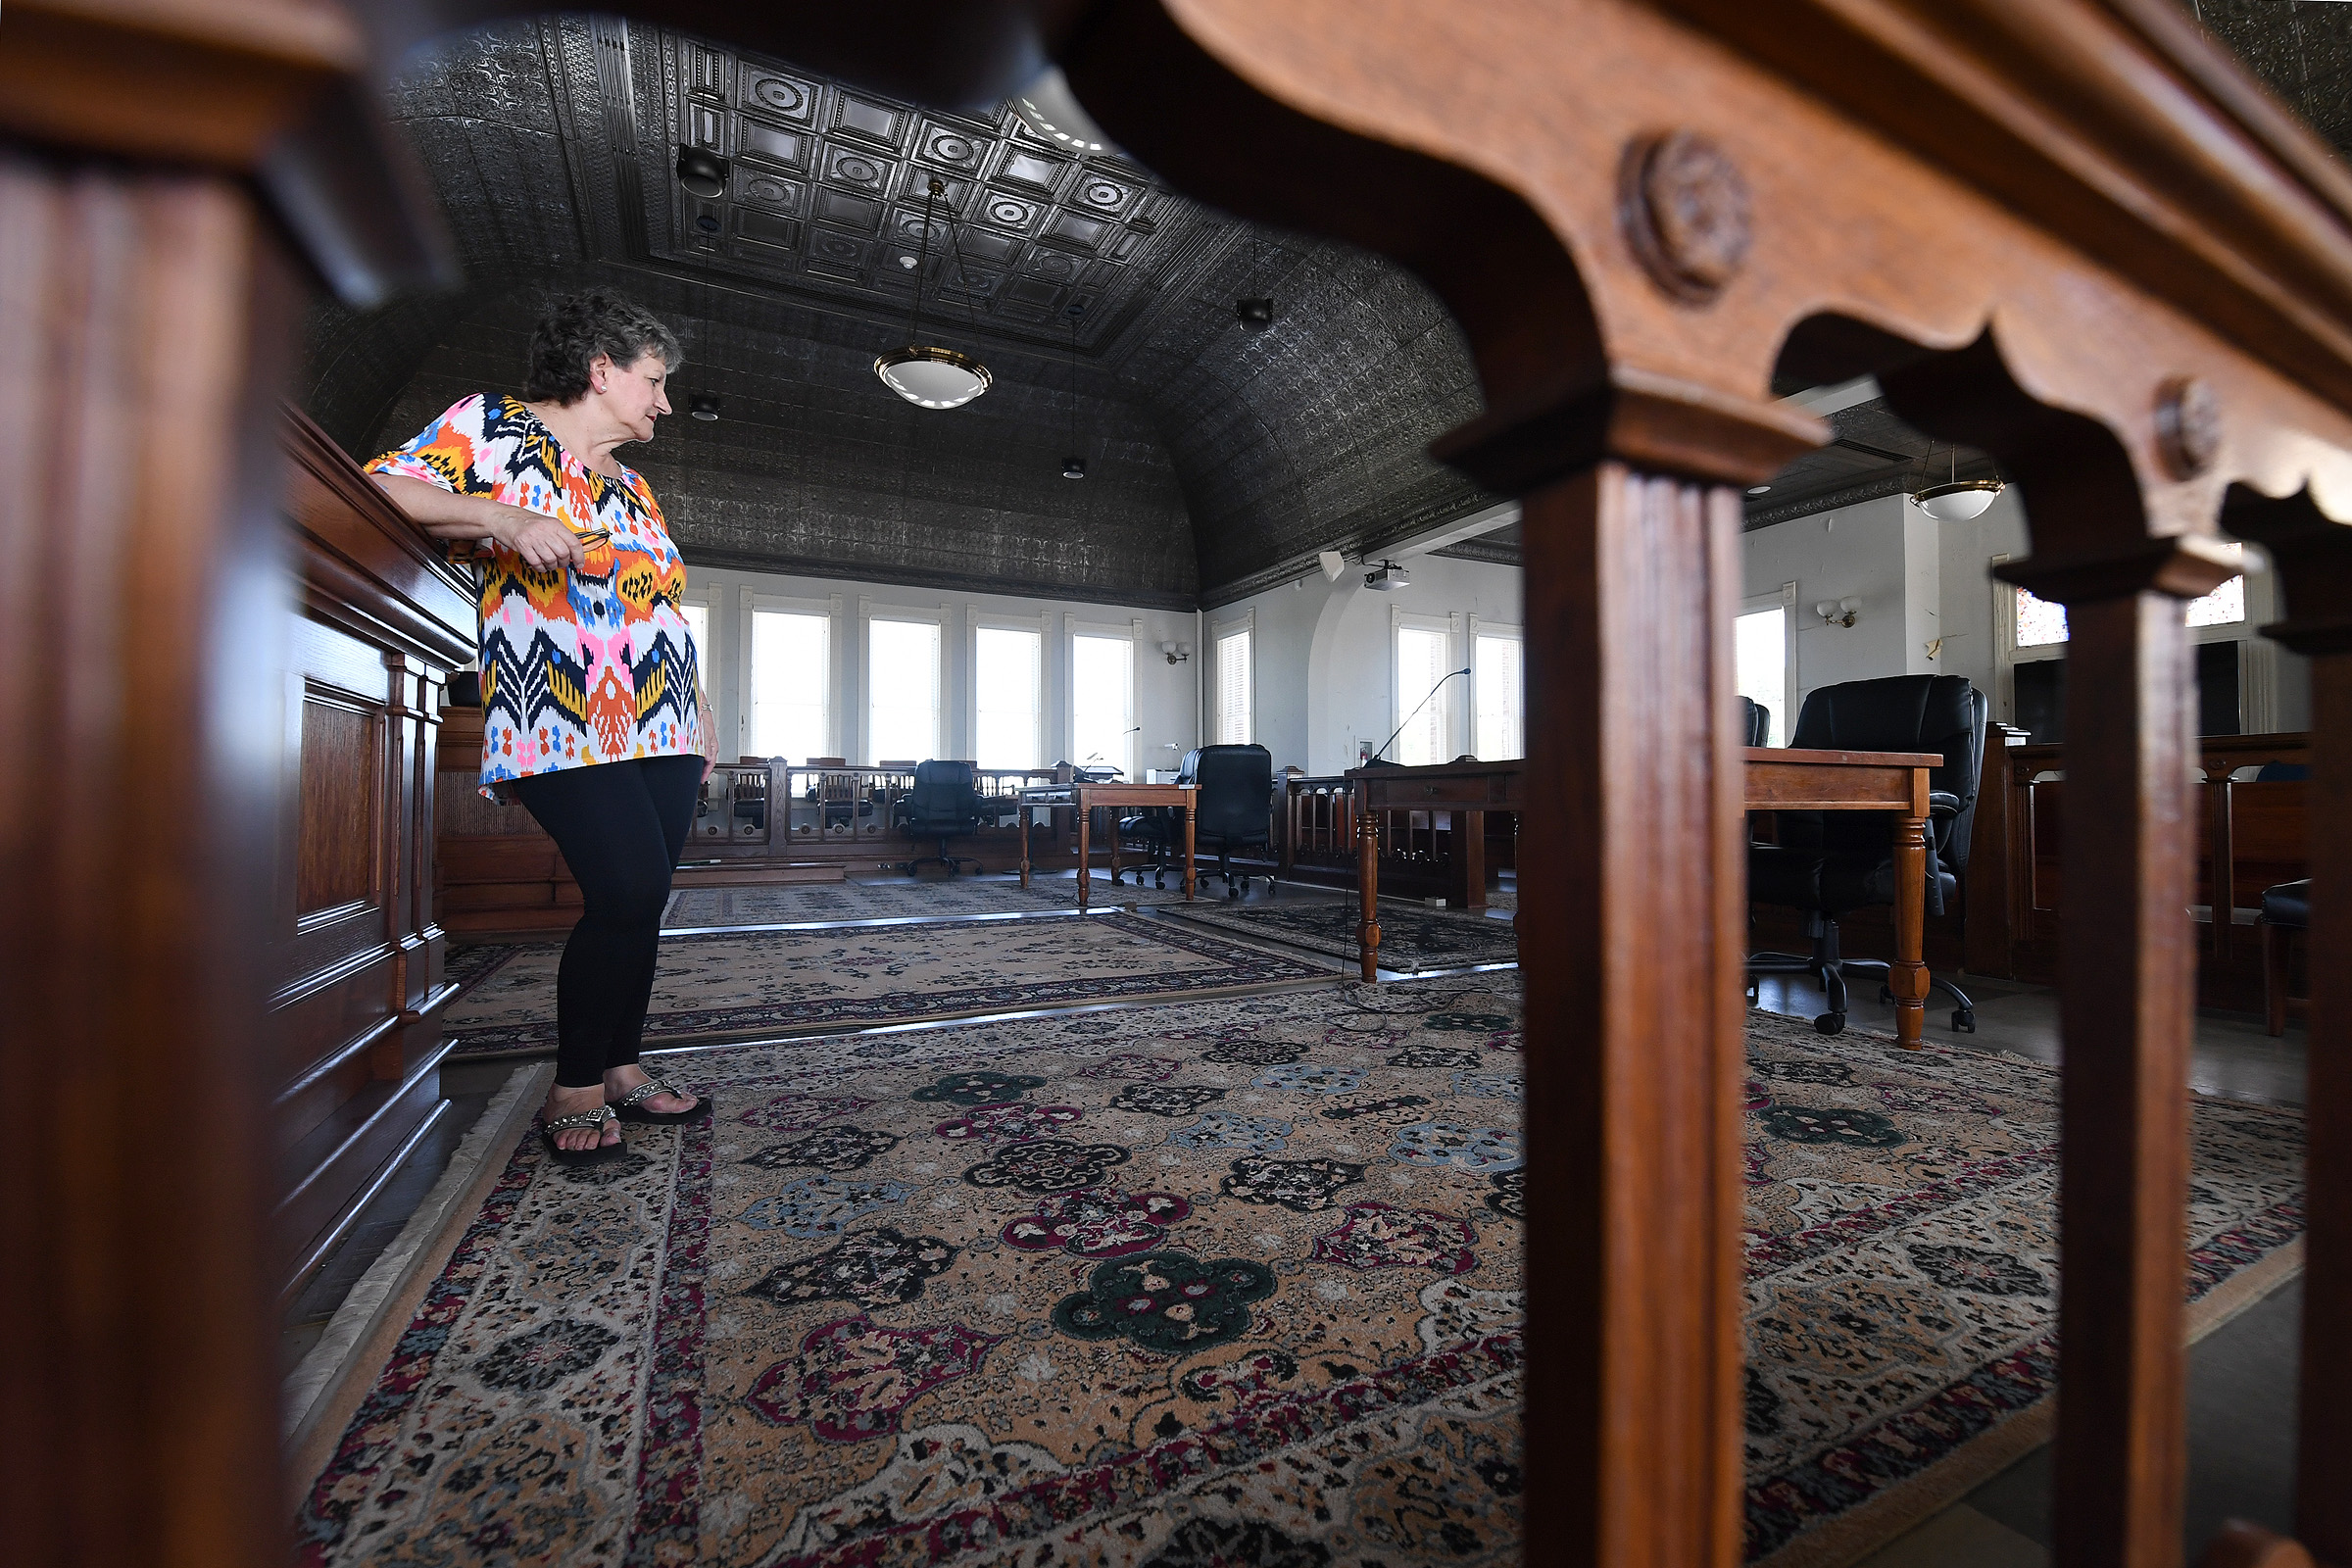 Former Mayor Gail Sowell stands in the courtroom at the Grimes County Courthouse on Thursday, June 13, 2019 ahead of a community event celebrating the courthouse's 125th anniversary in Anderson, Texas. (Laura McKenzie/The Eagle)